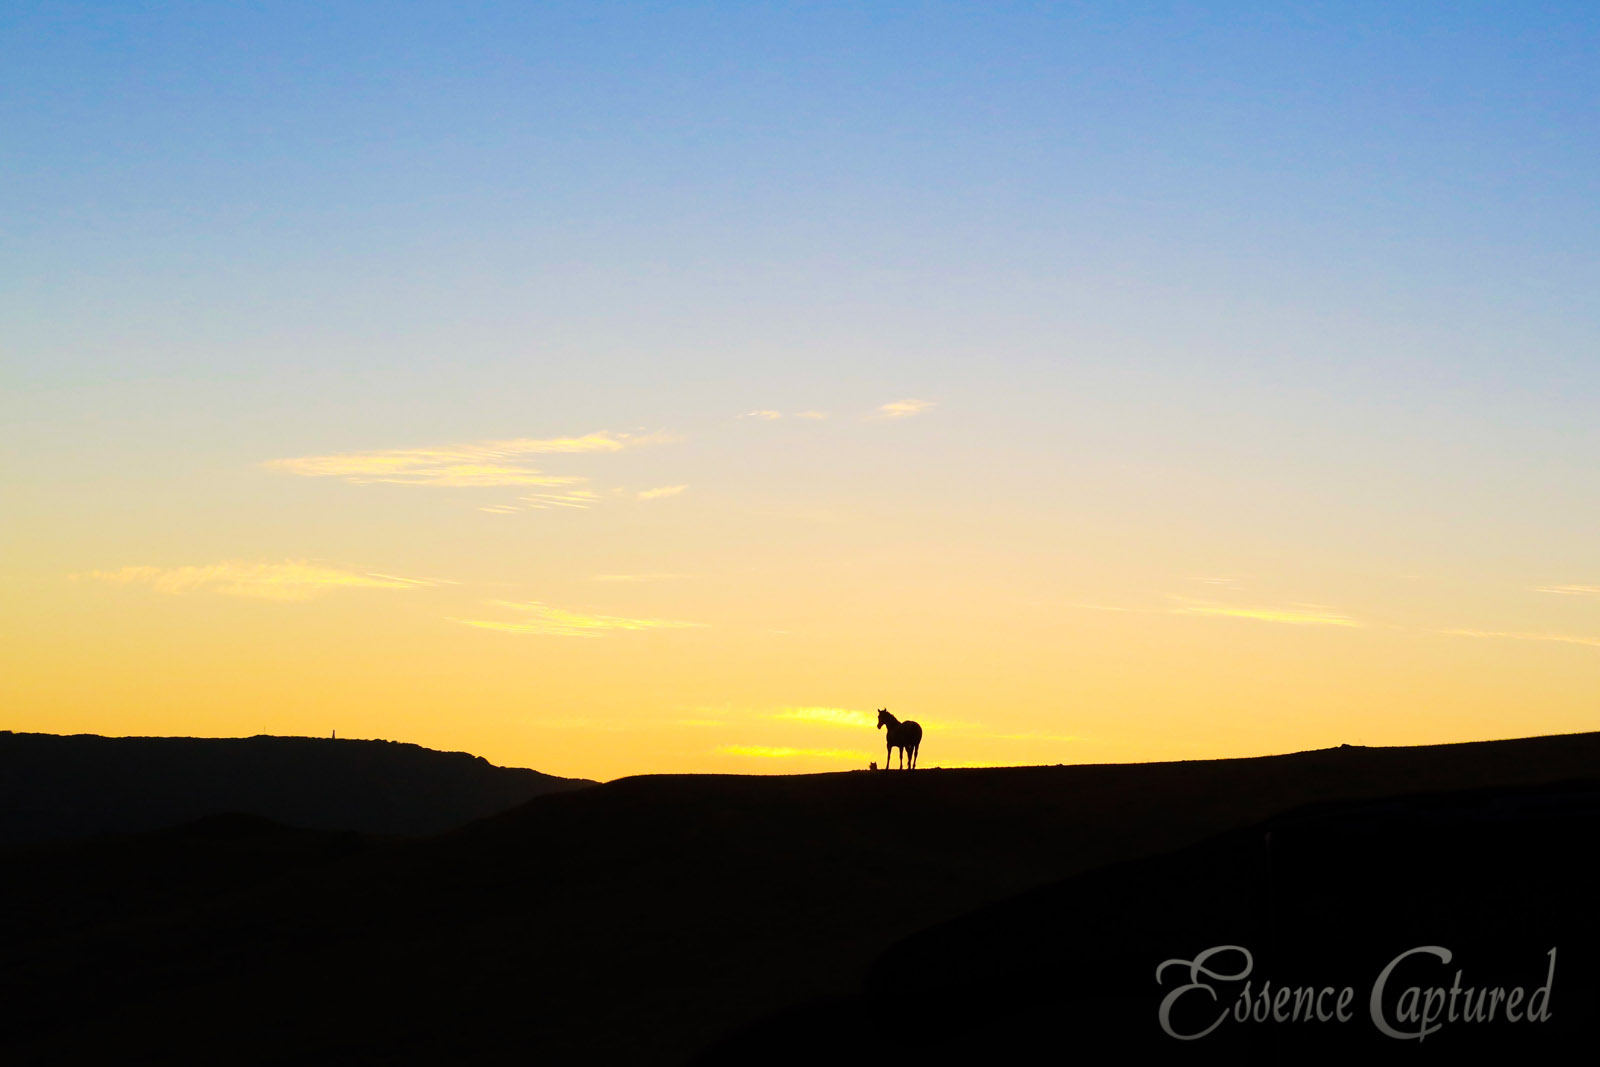 silhouette of horse at sunset yellow sky fade to blue foreground black